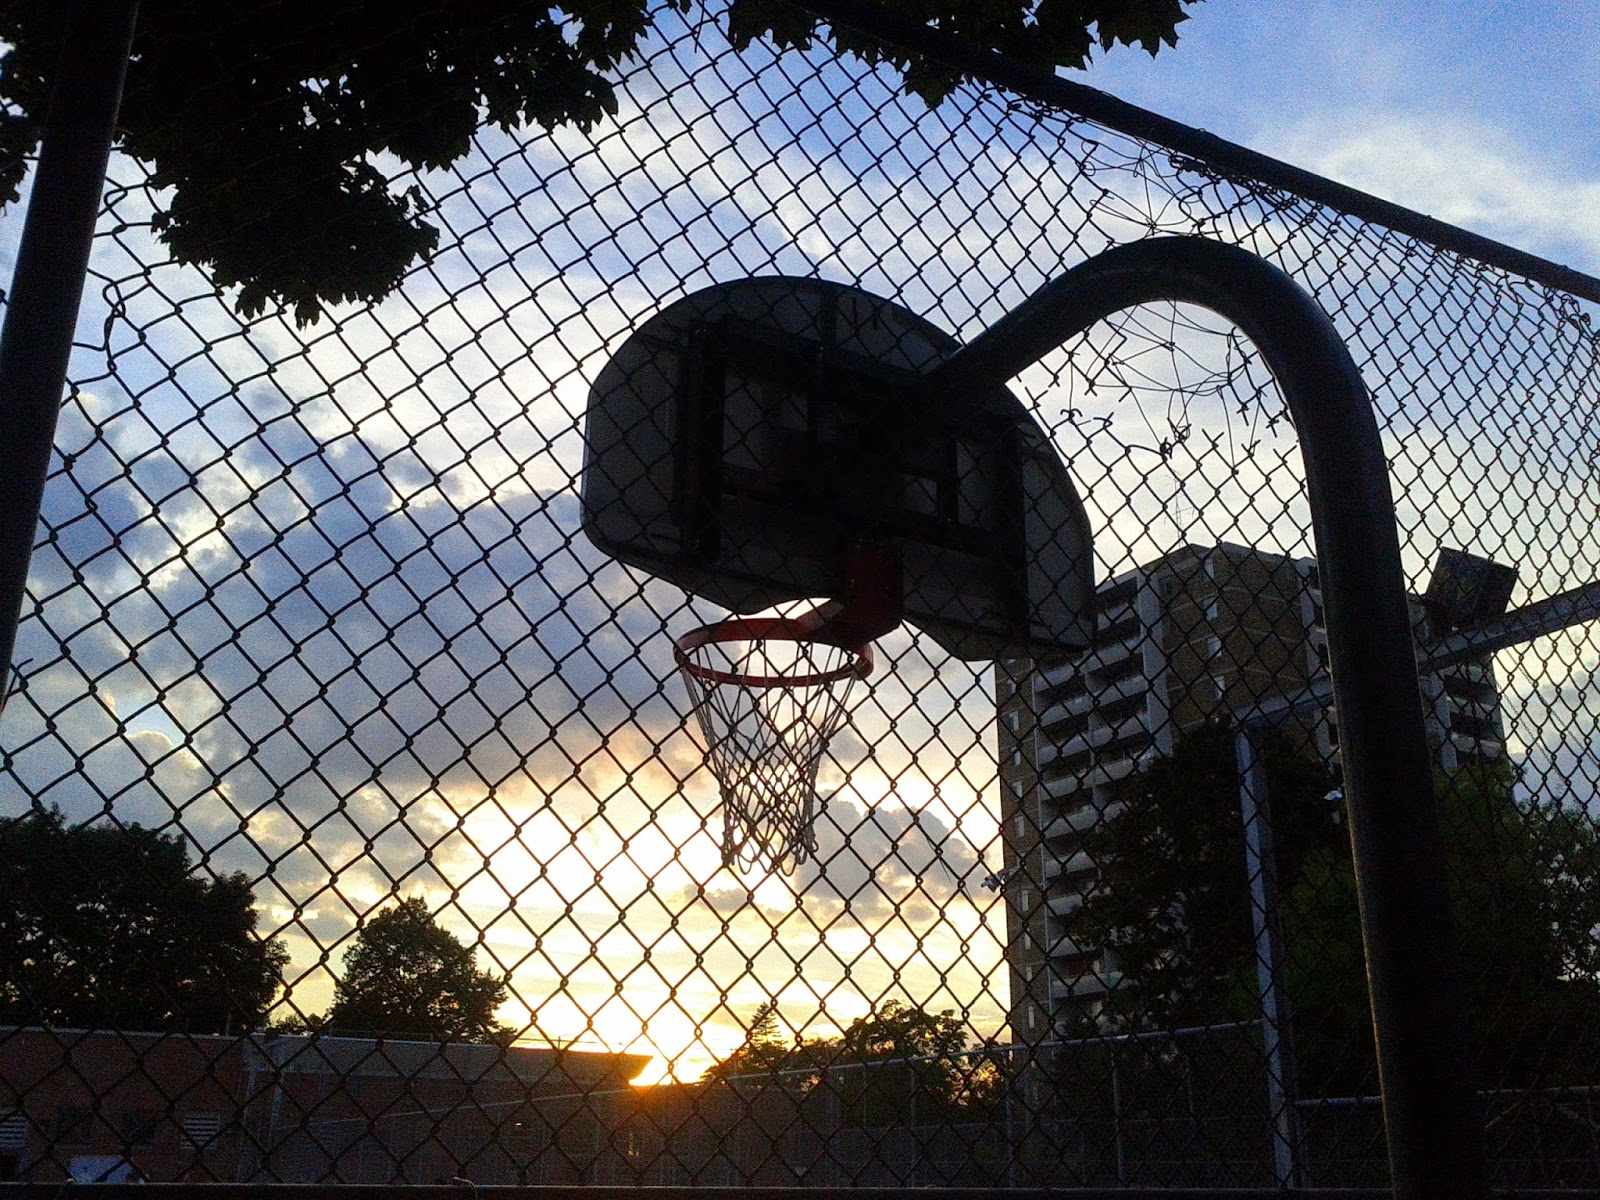 Stock photo: Basketball net behind a cage with the clouds and sun in the background